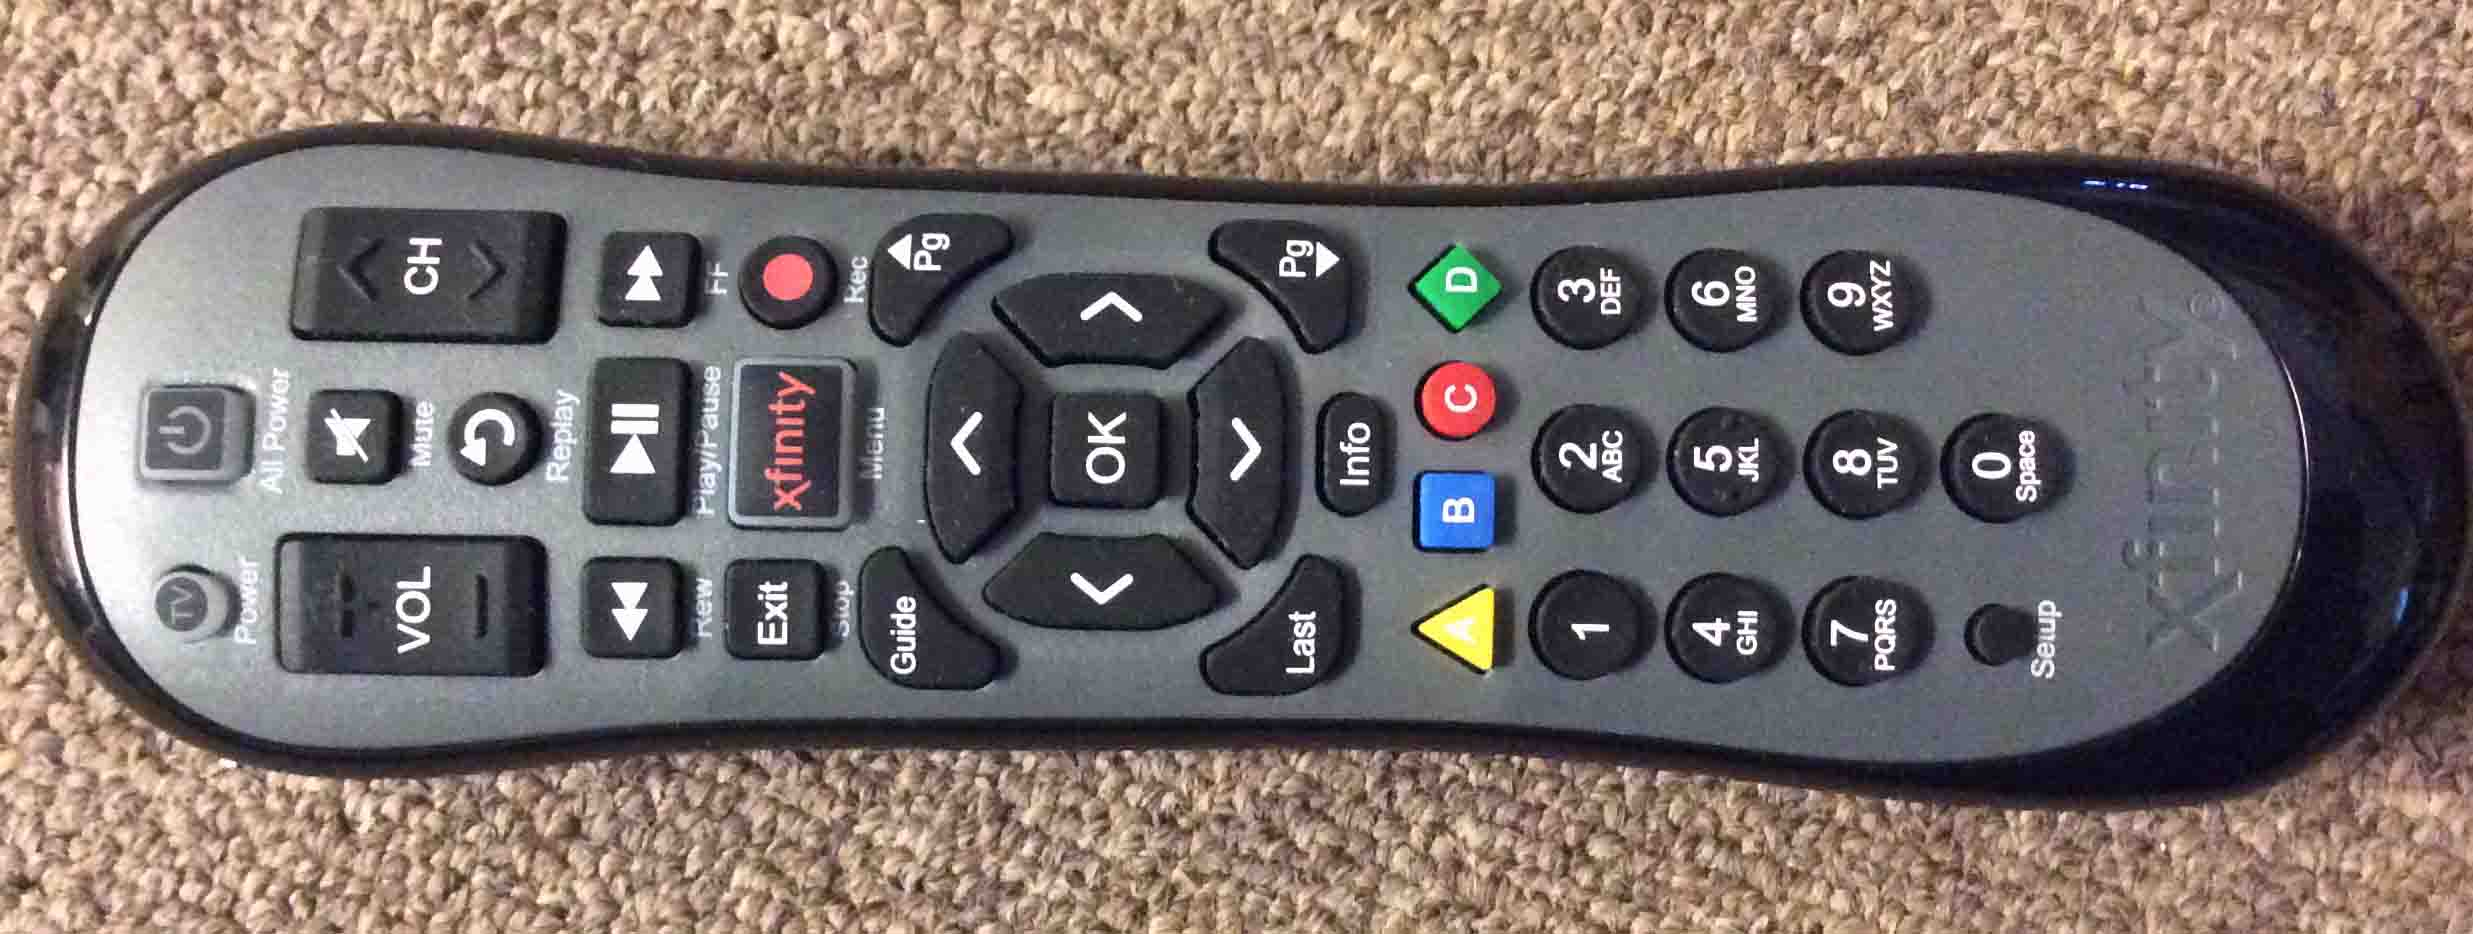 Xr2 Remote Control Xfinity U2 Review Tom S Tek Stop